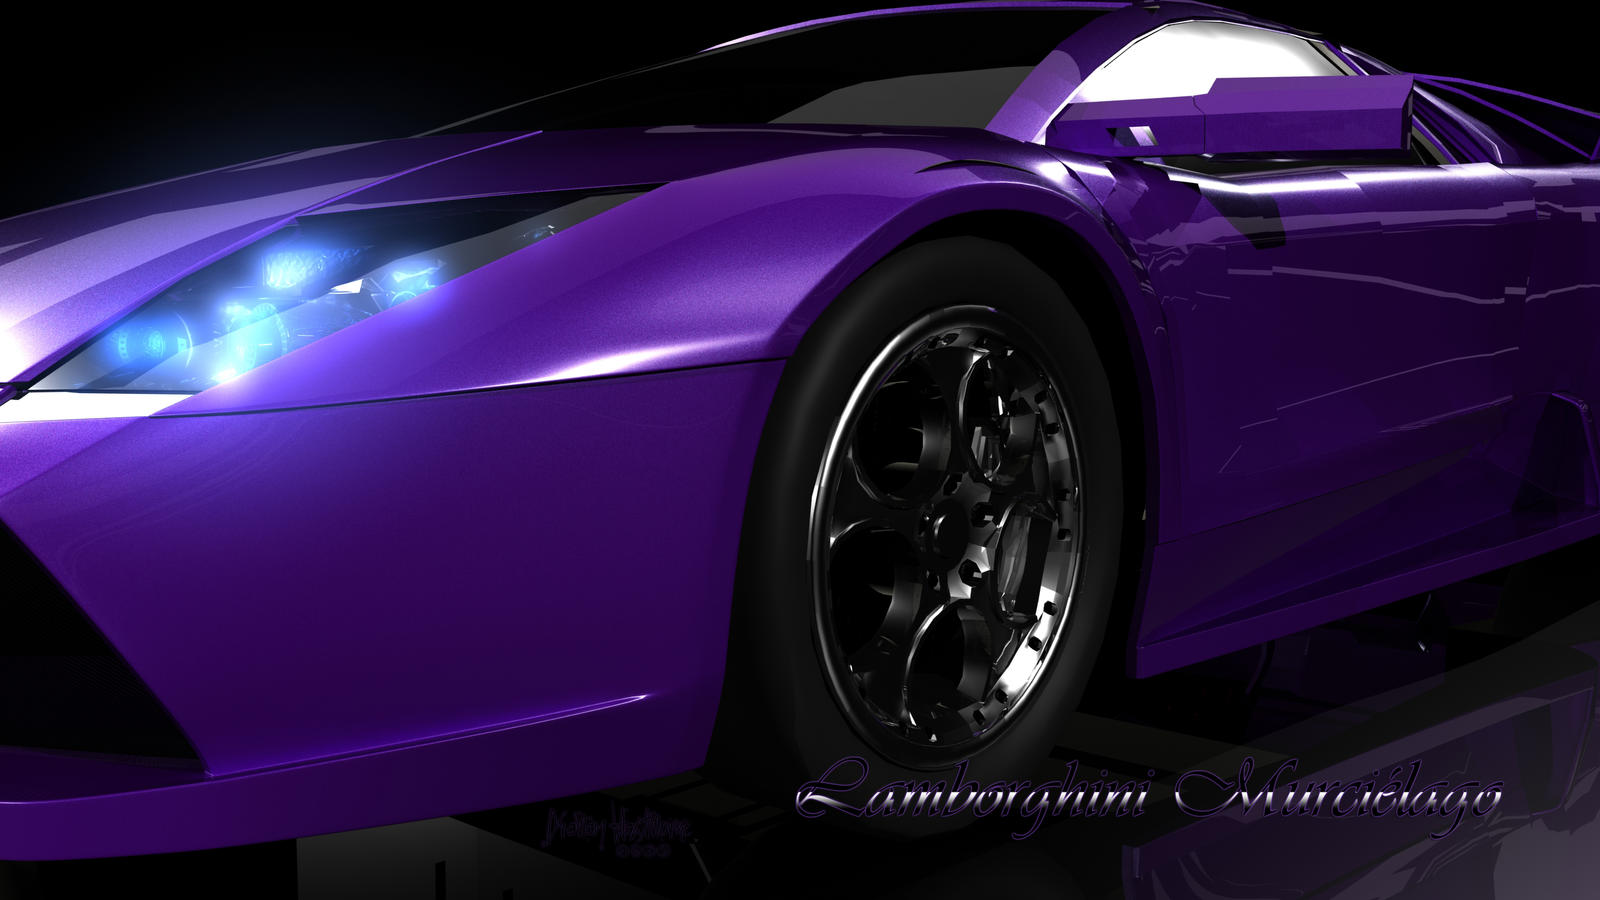 Purple Lamborghini Wallpaper